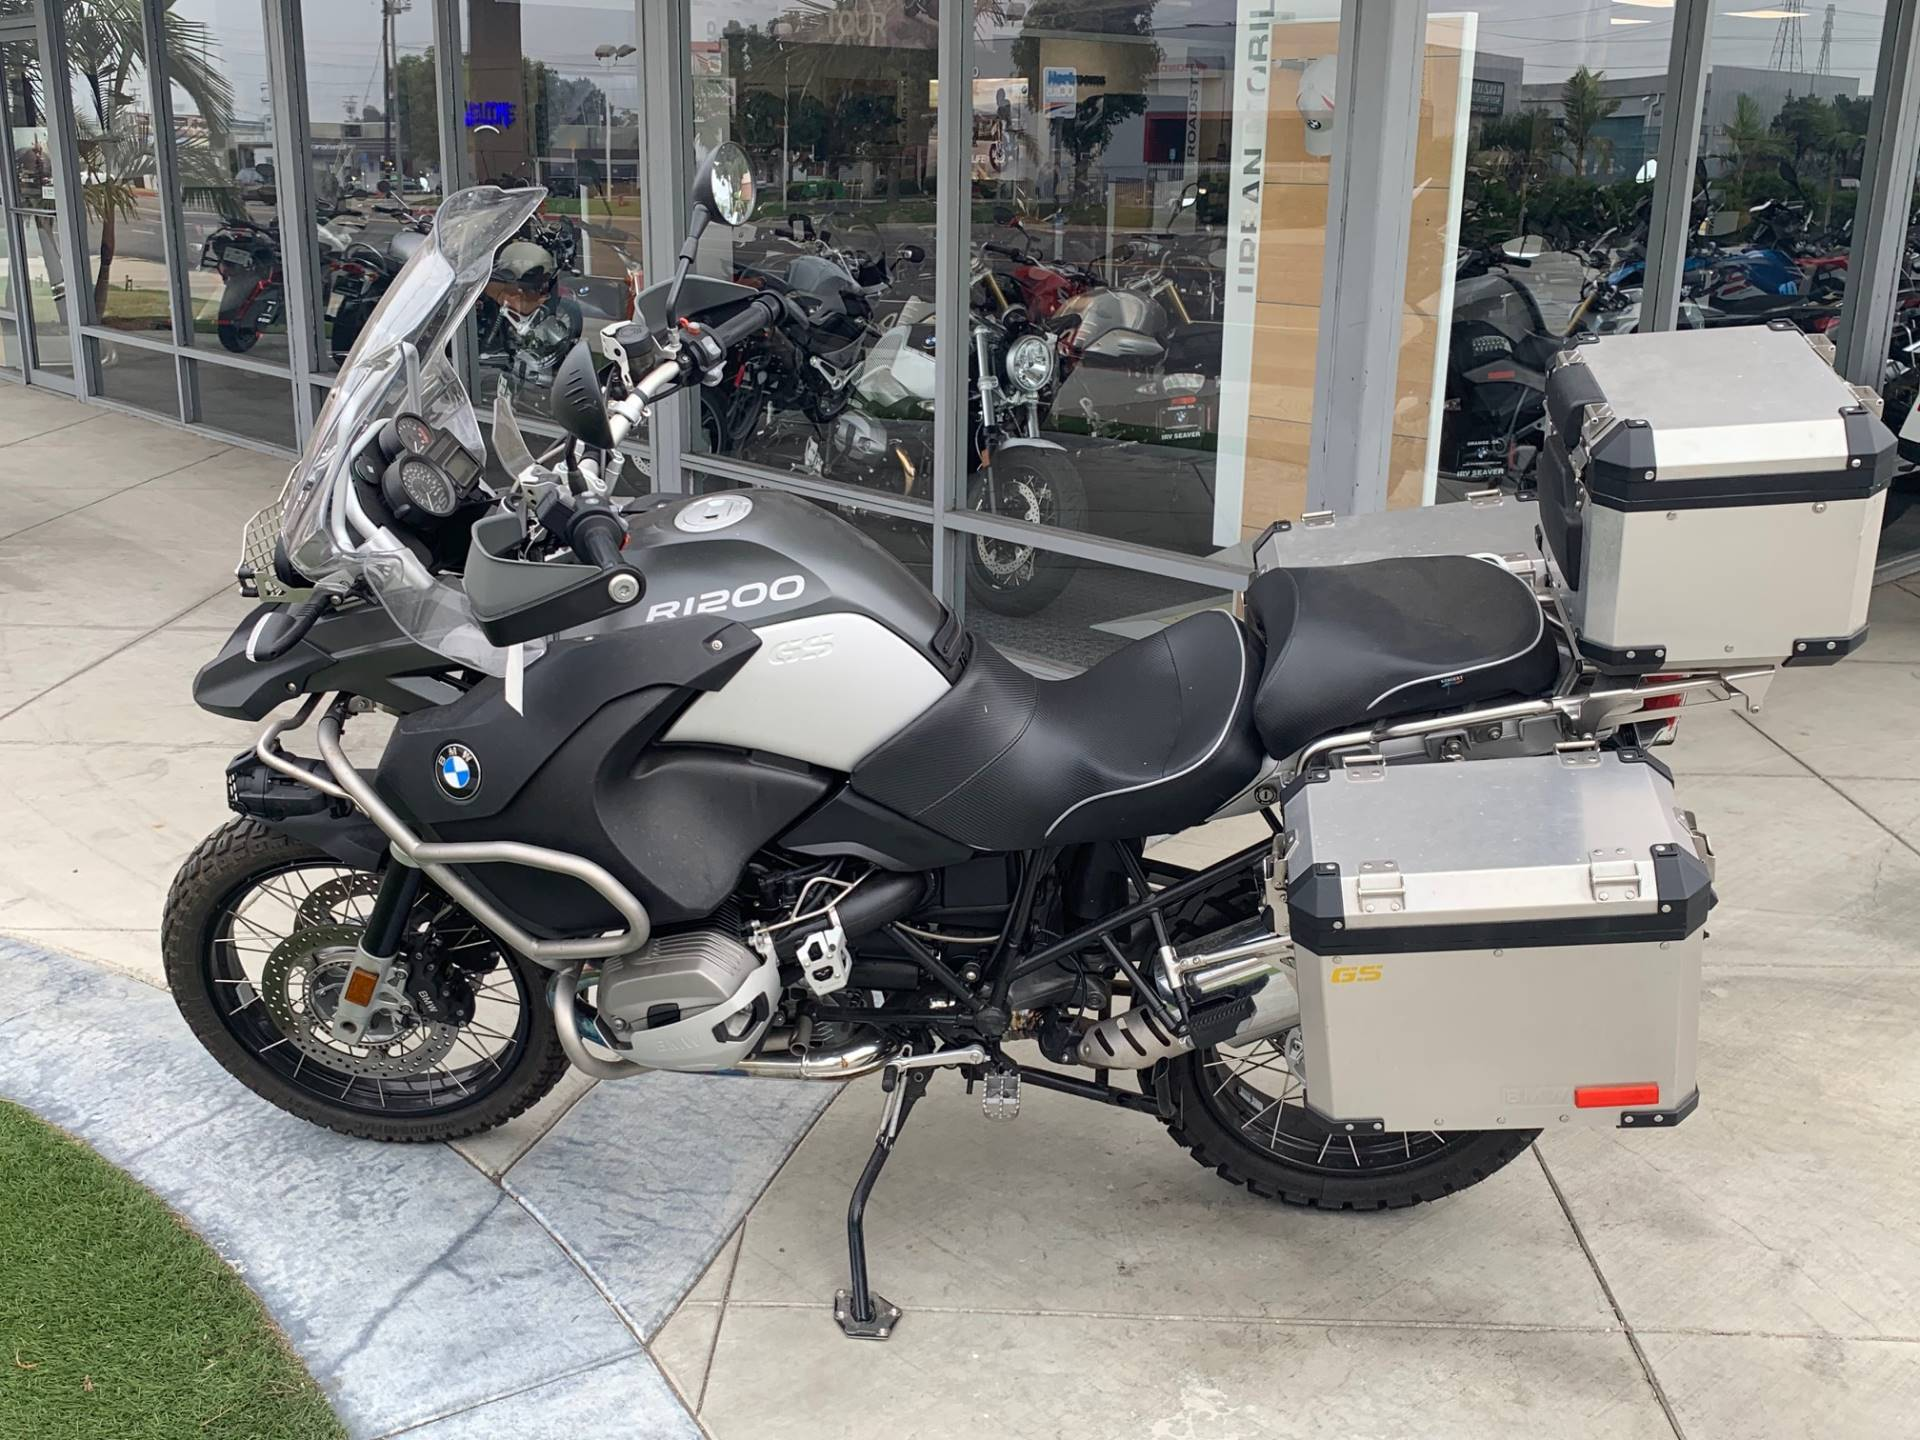 2011 BMW R 1200 GS Adventure in Orange, California - Photo 1